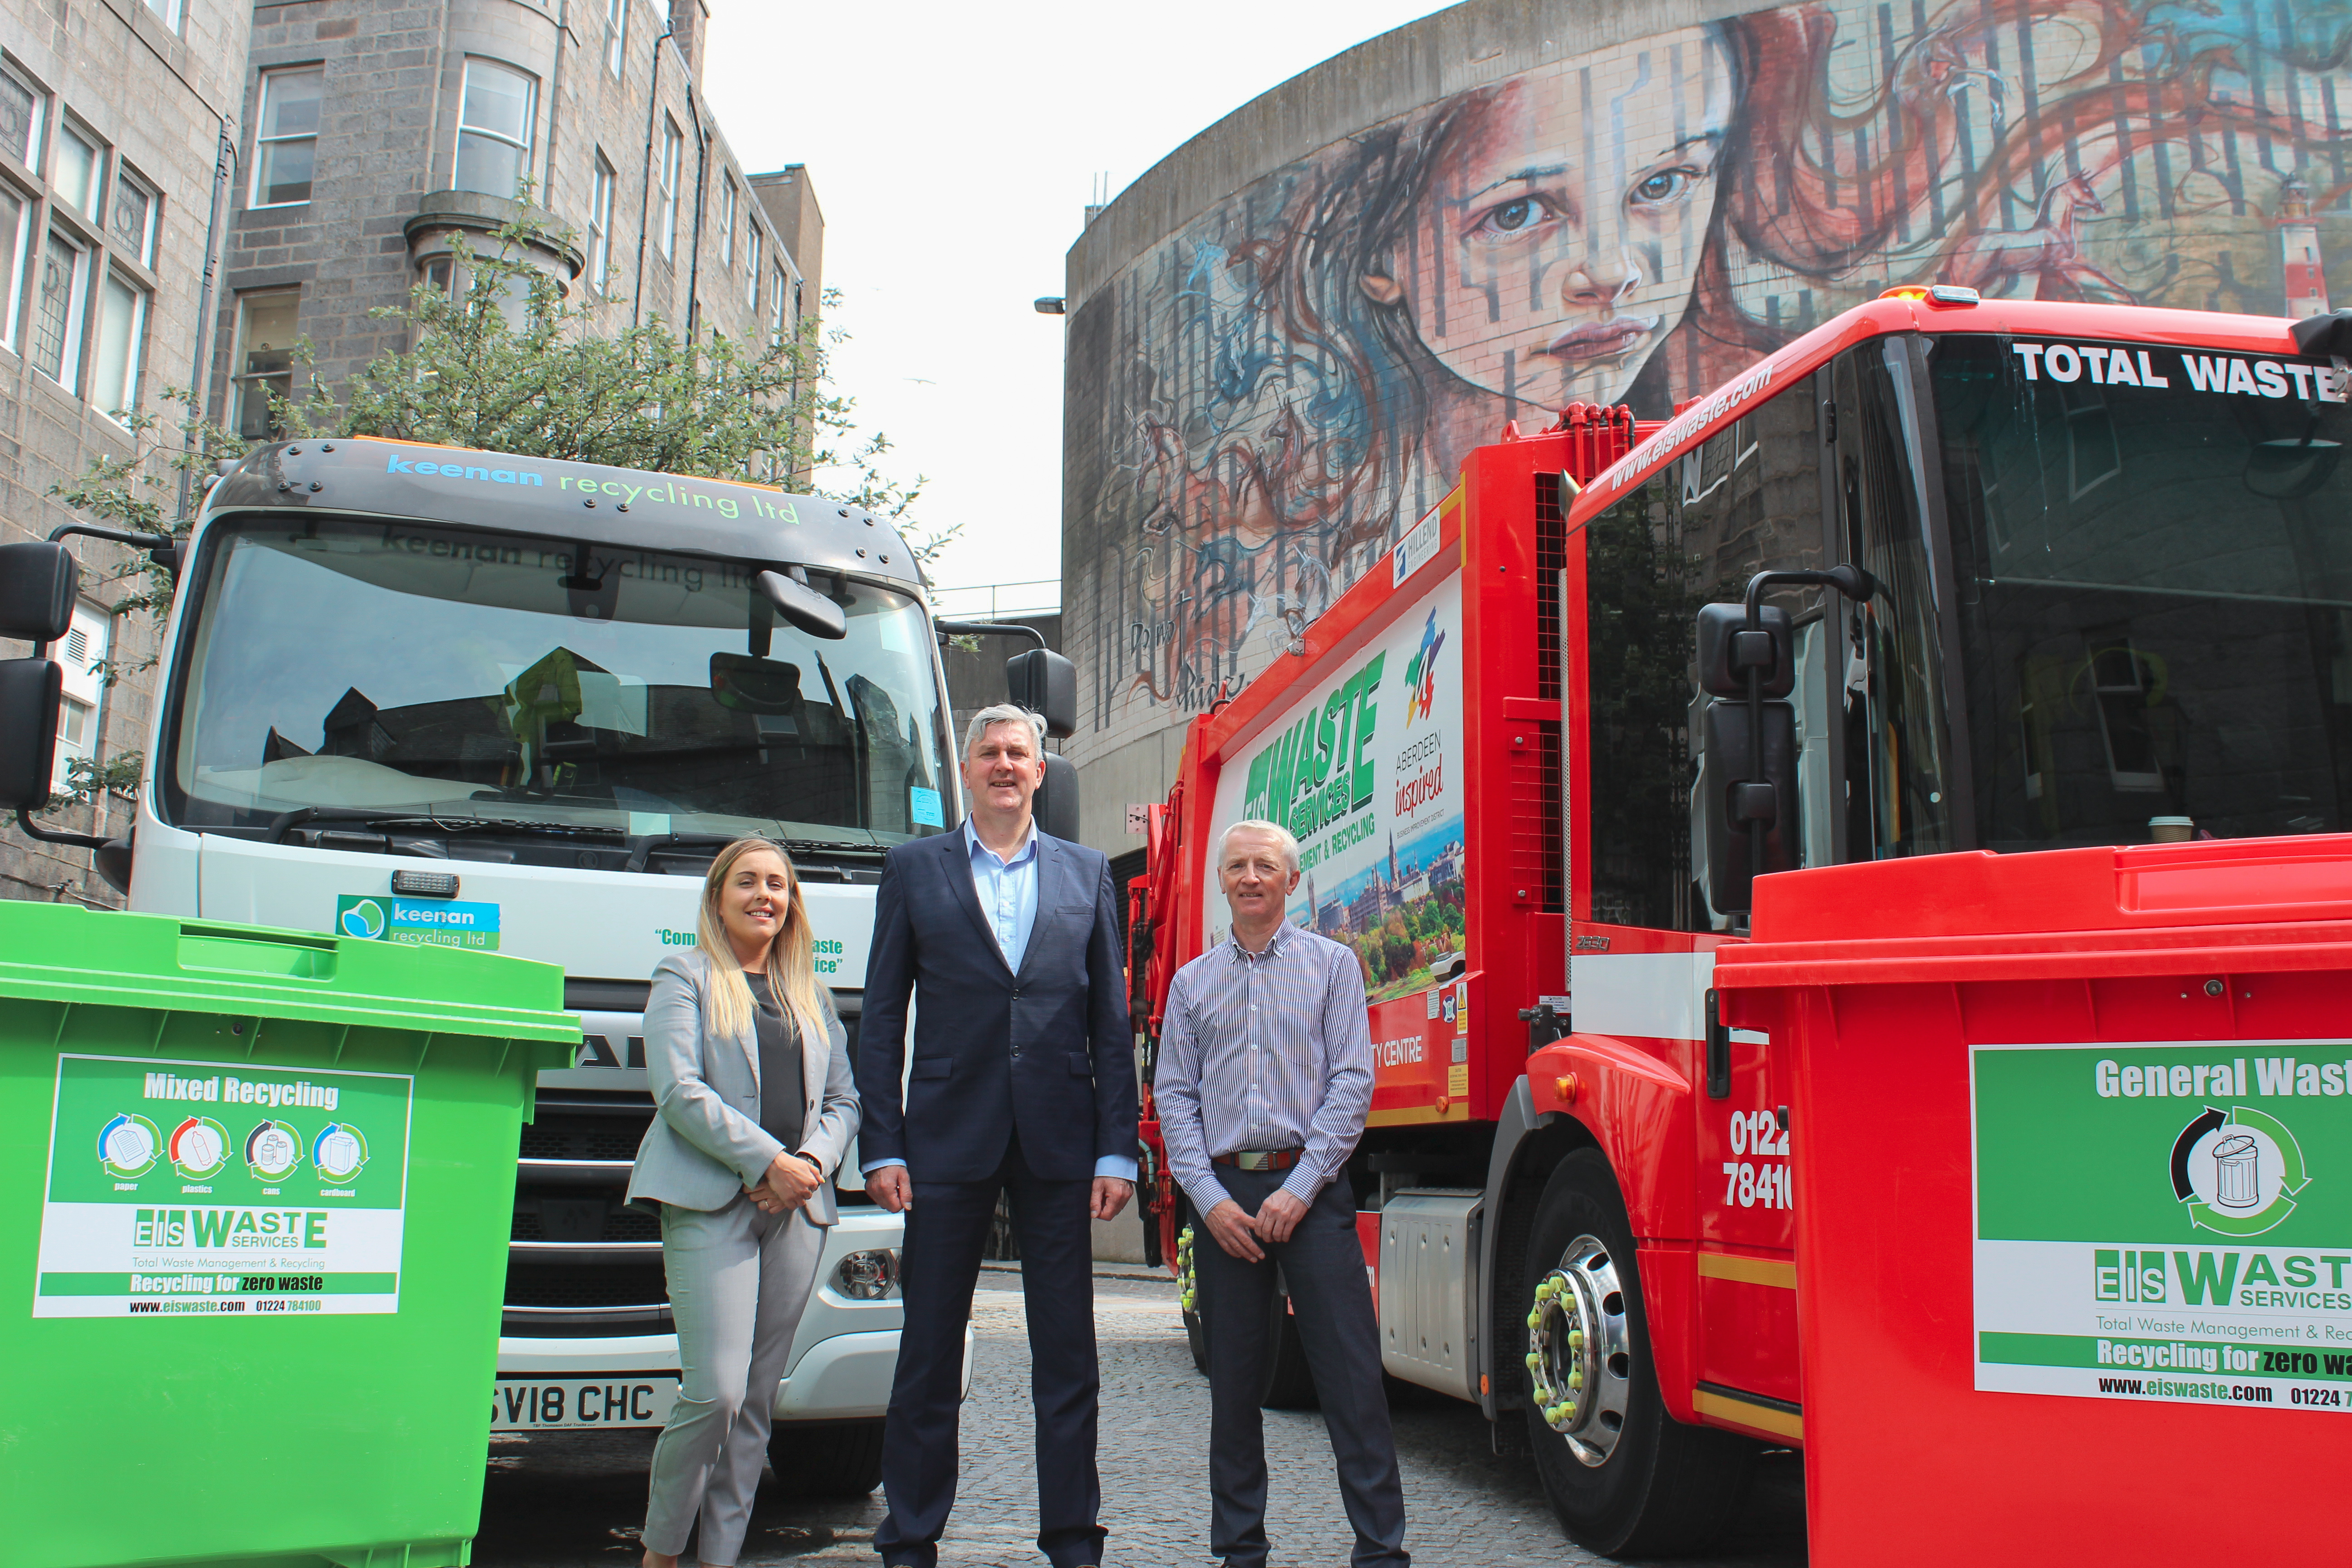 Local businesses urged to think green and reduce environmental impact